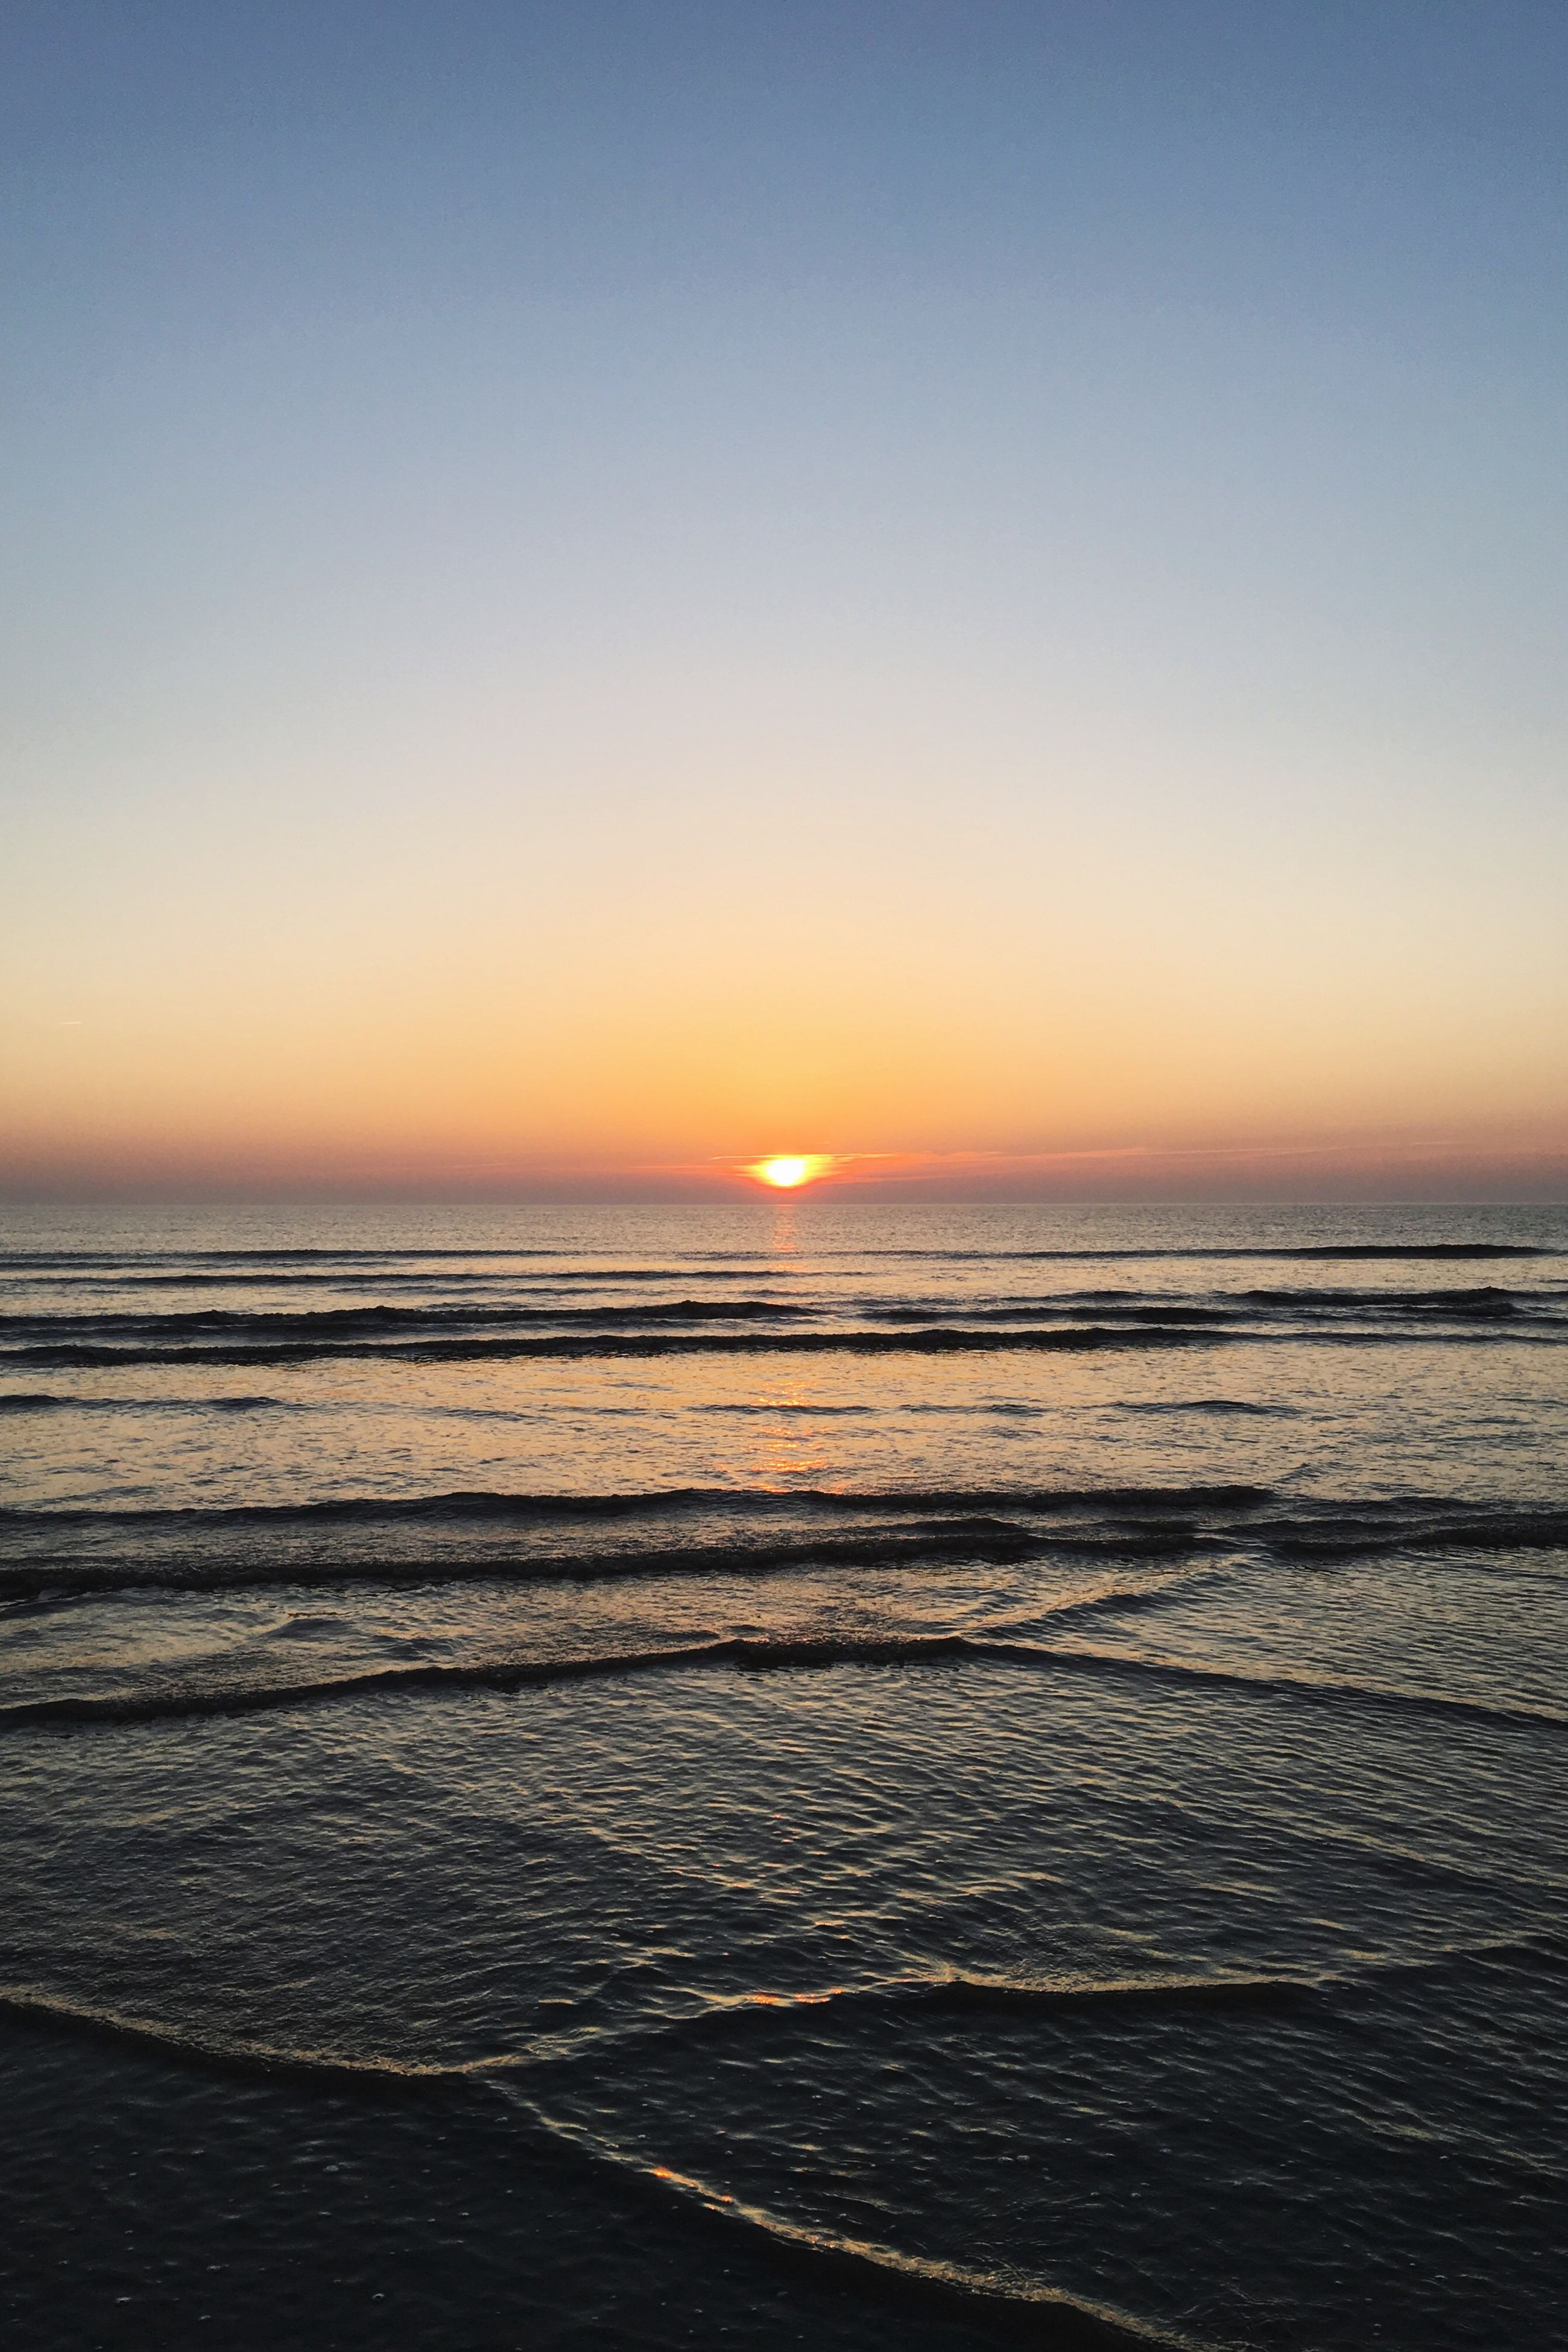 sea, sunset, beach, horizon over water, nature, scenics, beauty in nature, water, tranquility, tranquil scene, idyllic, sand, no people, outdoors, clear sky, sky, day